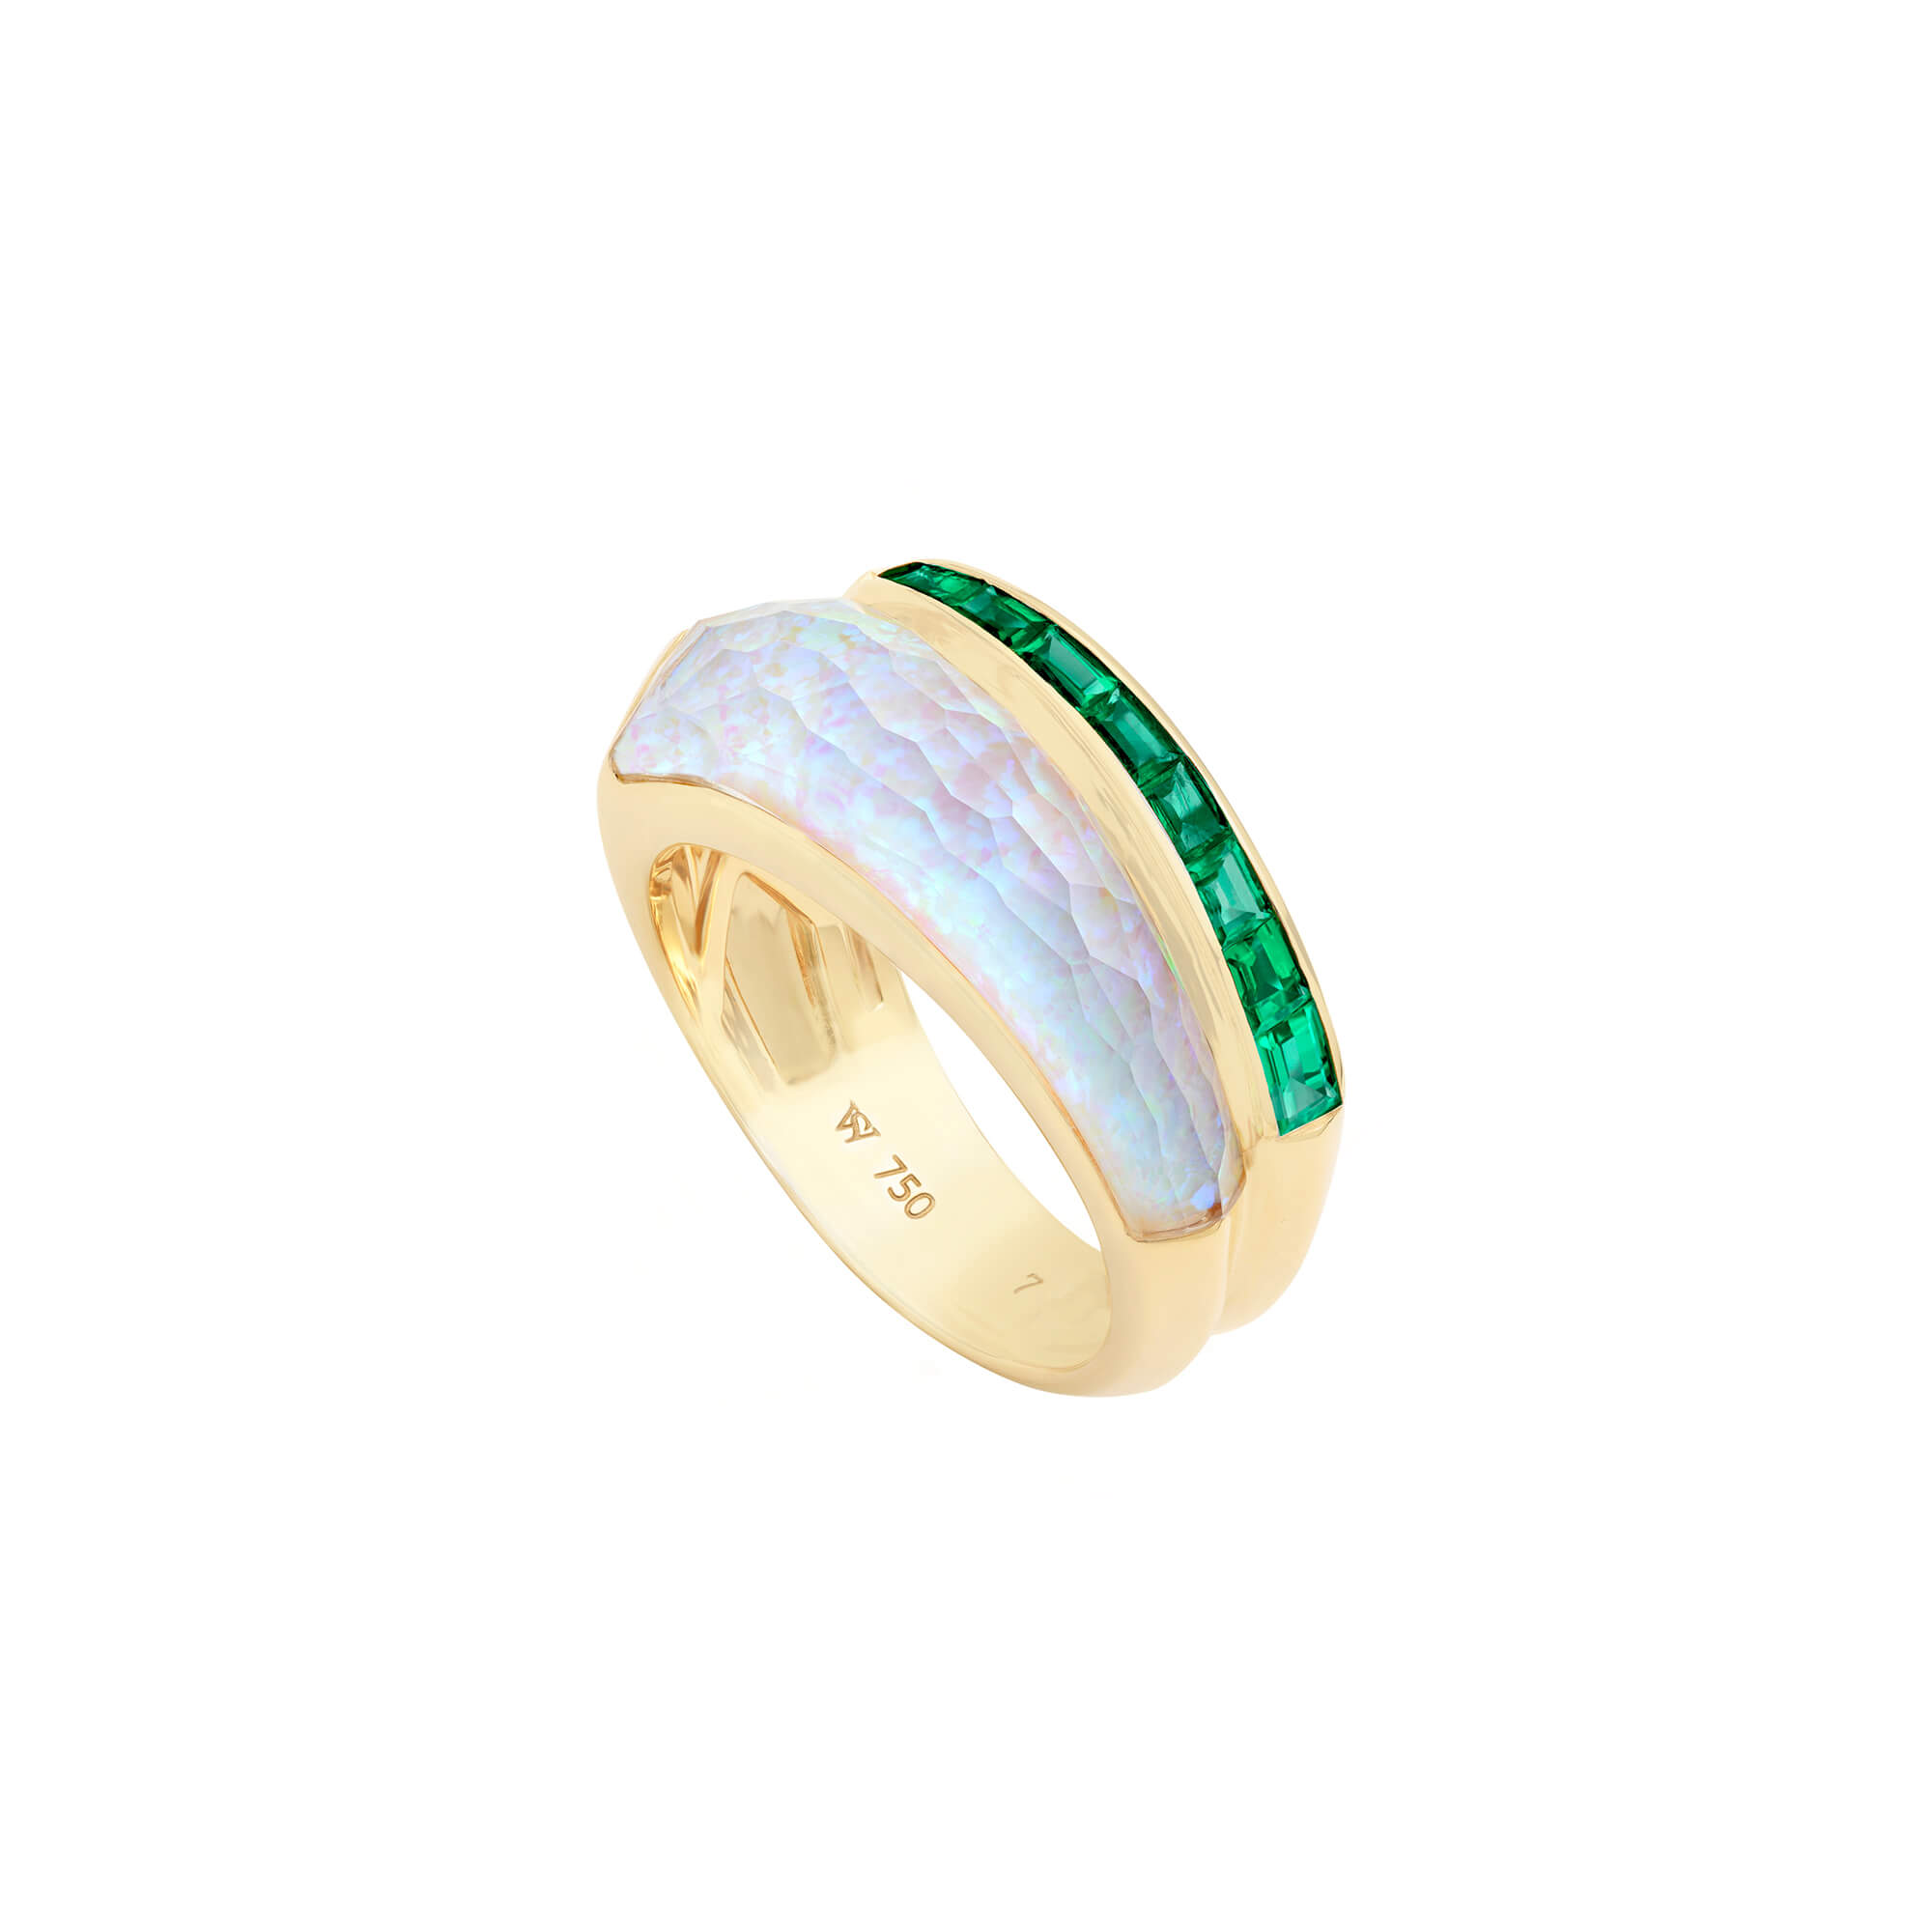 White Opalescent Crystal Haze Slimline Emerald Ring | CH₂